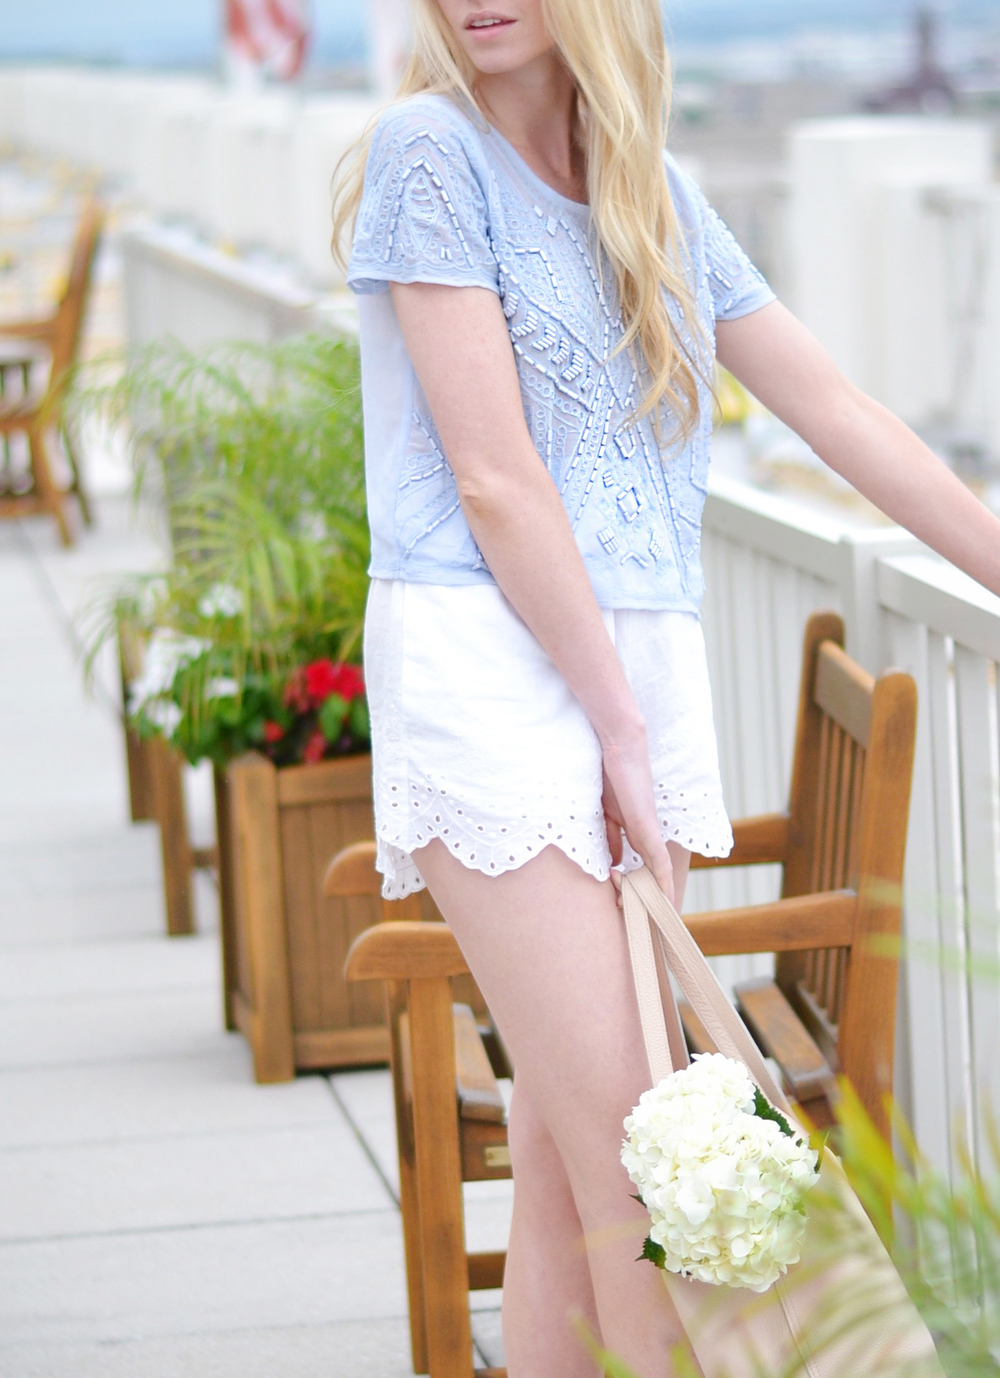 Daycation Beaded Top (via Chic Now)